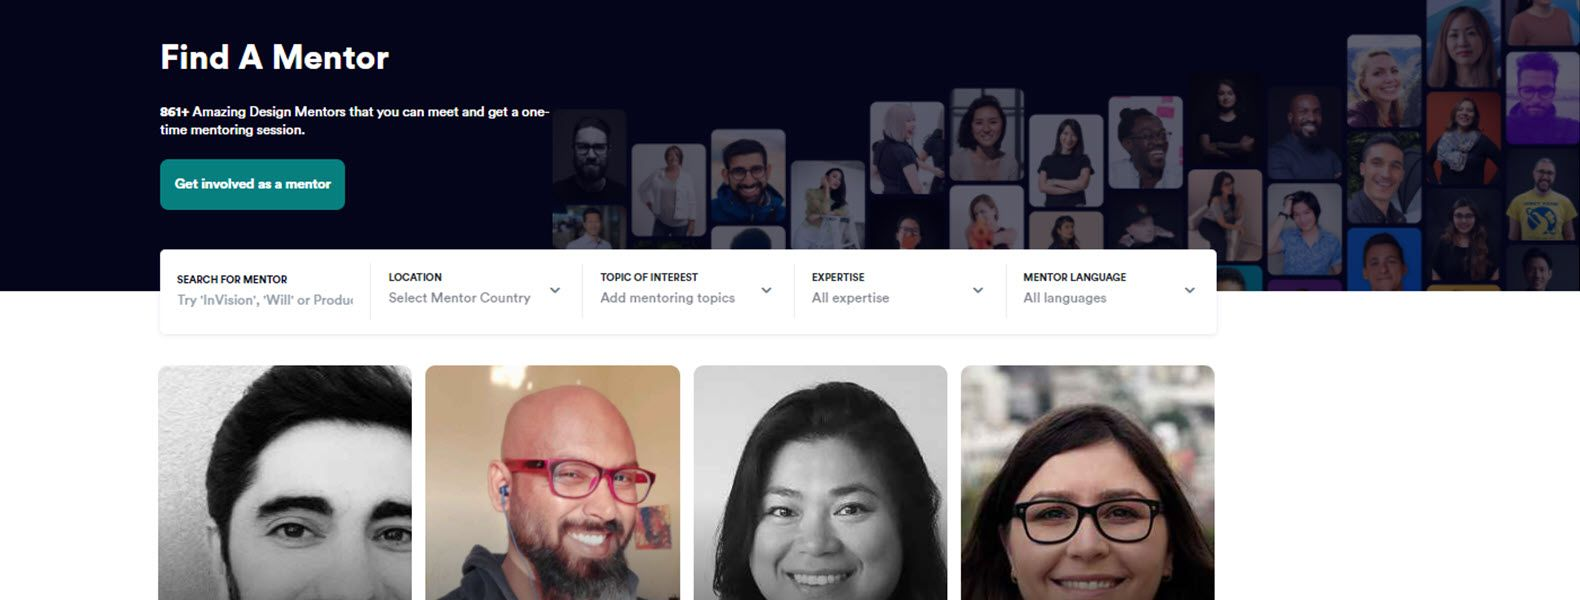 /adplist-matches-laid-off-designers-with-mentors-for-free-rk2g32wj feature image